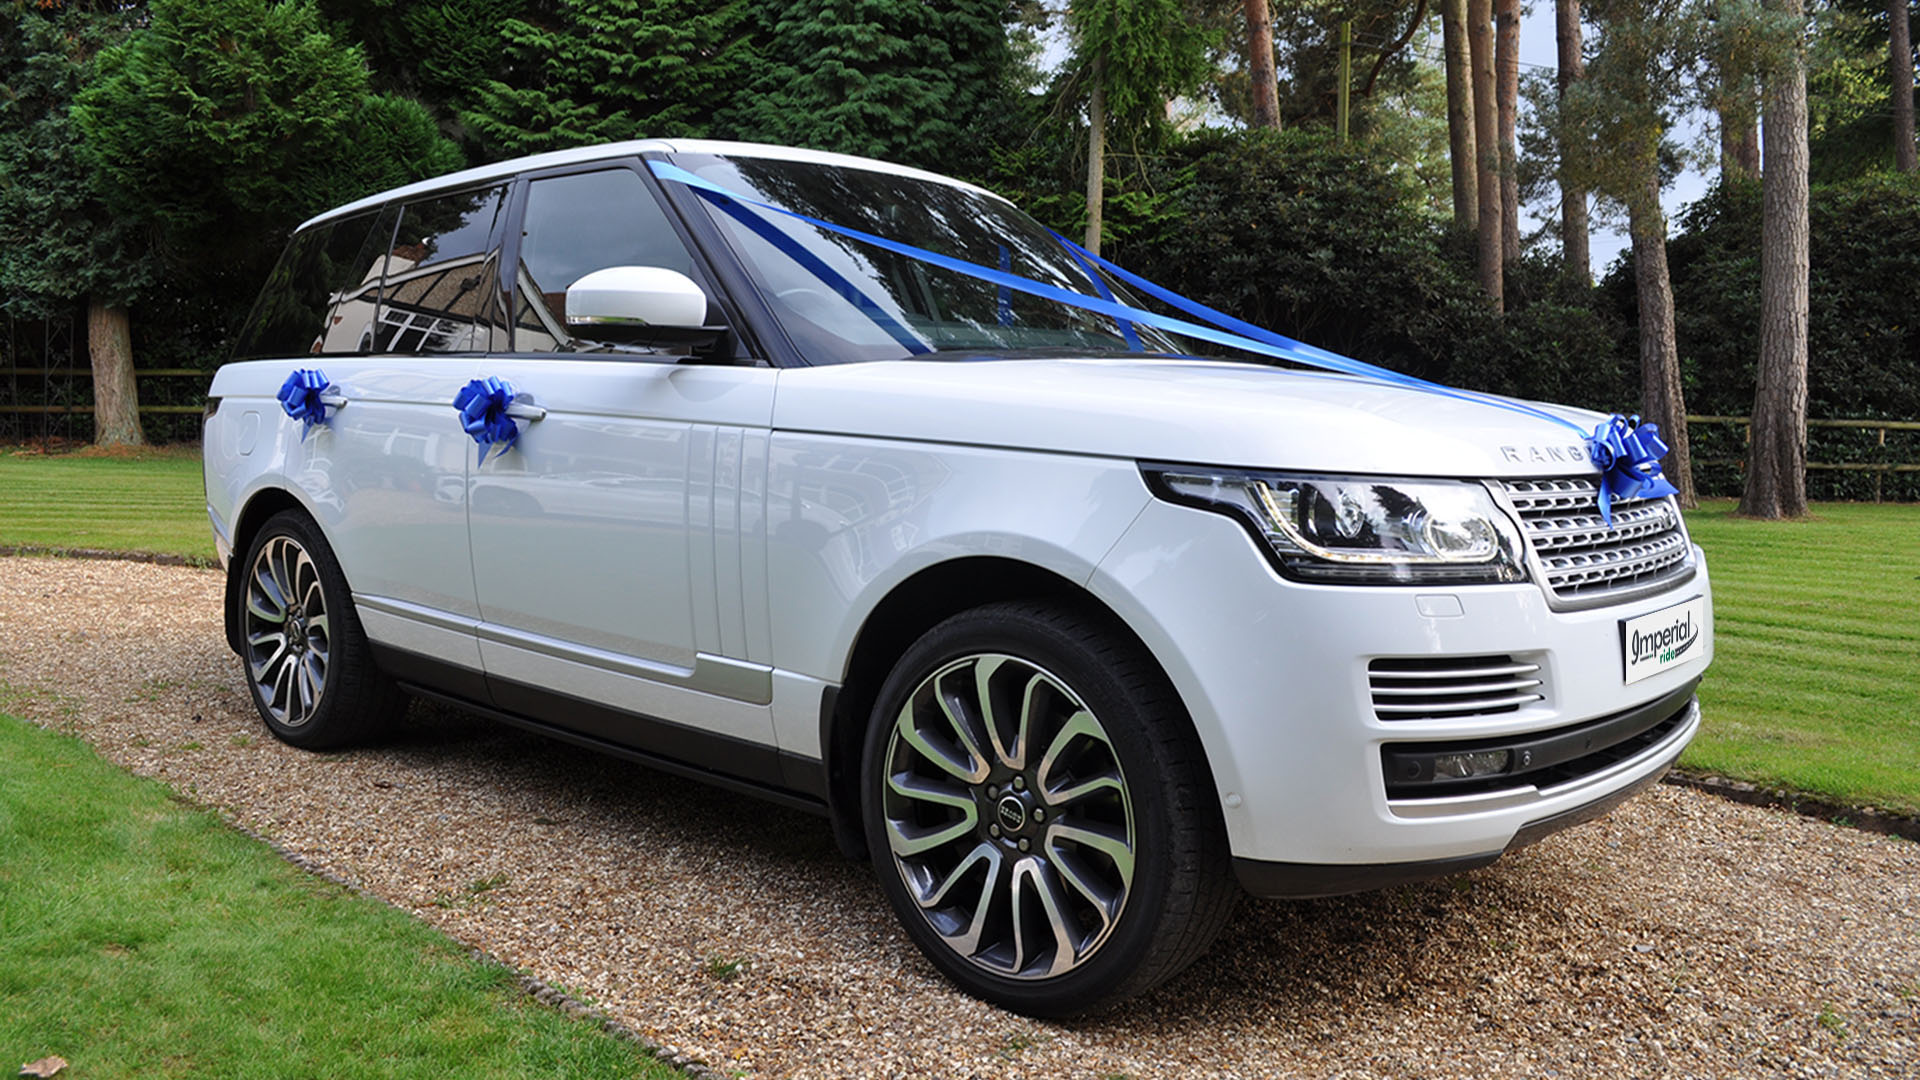 range-rover-wedding-hire-in-hexley